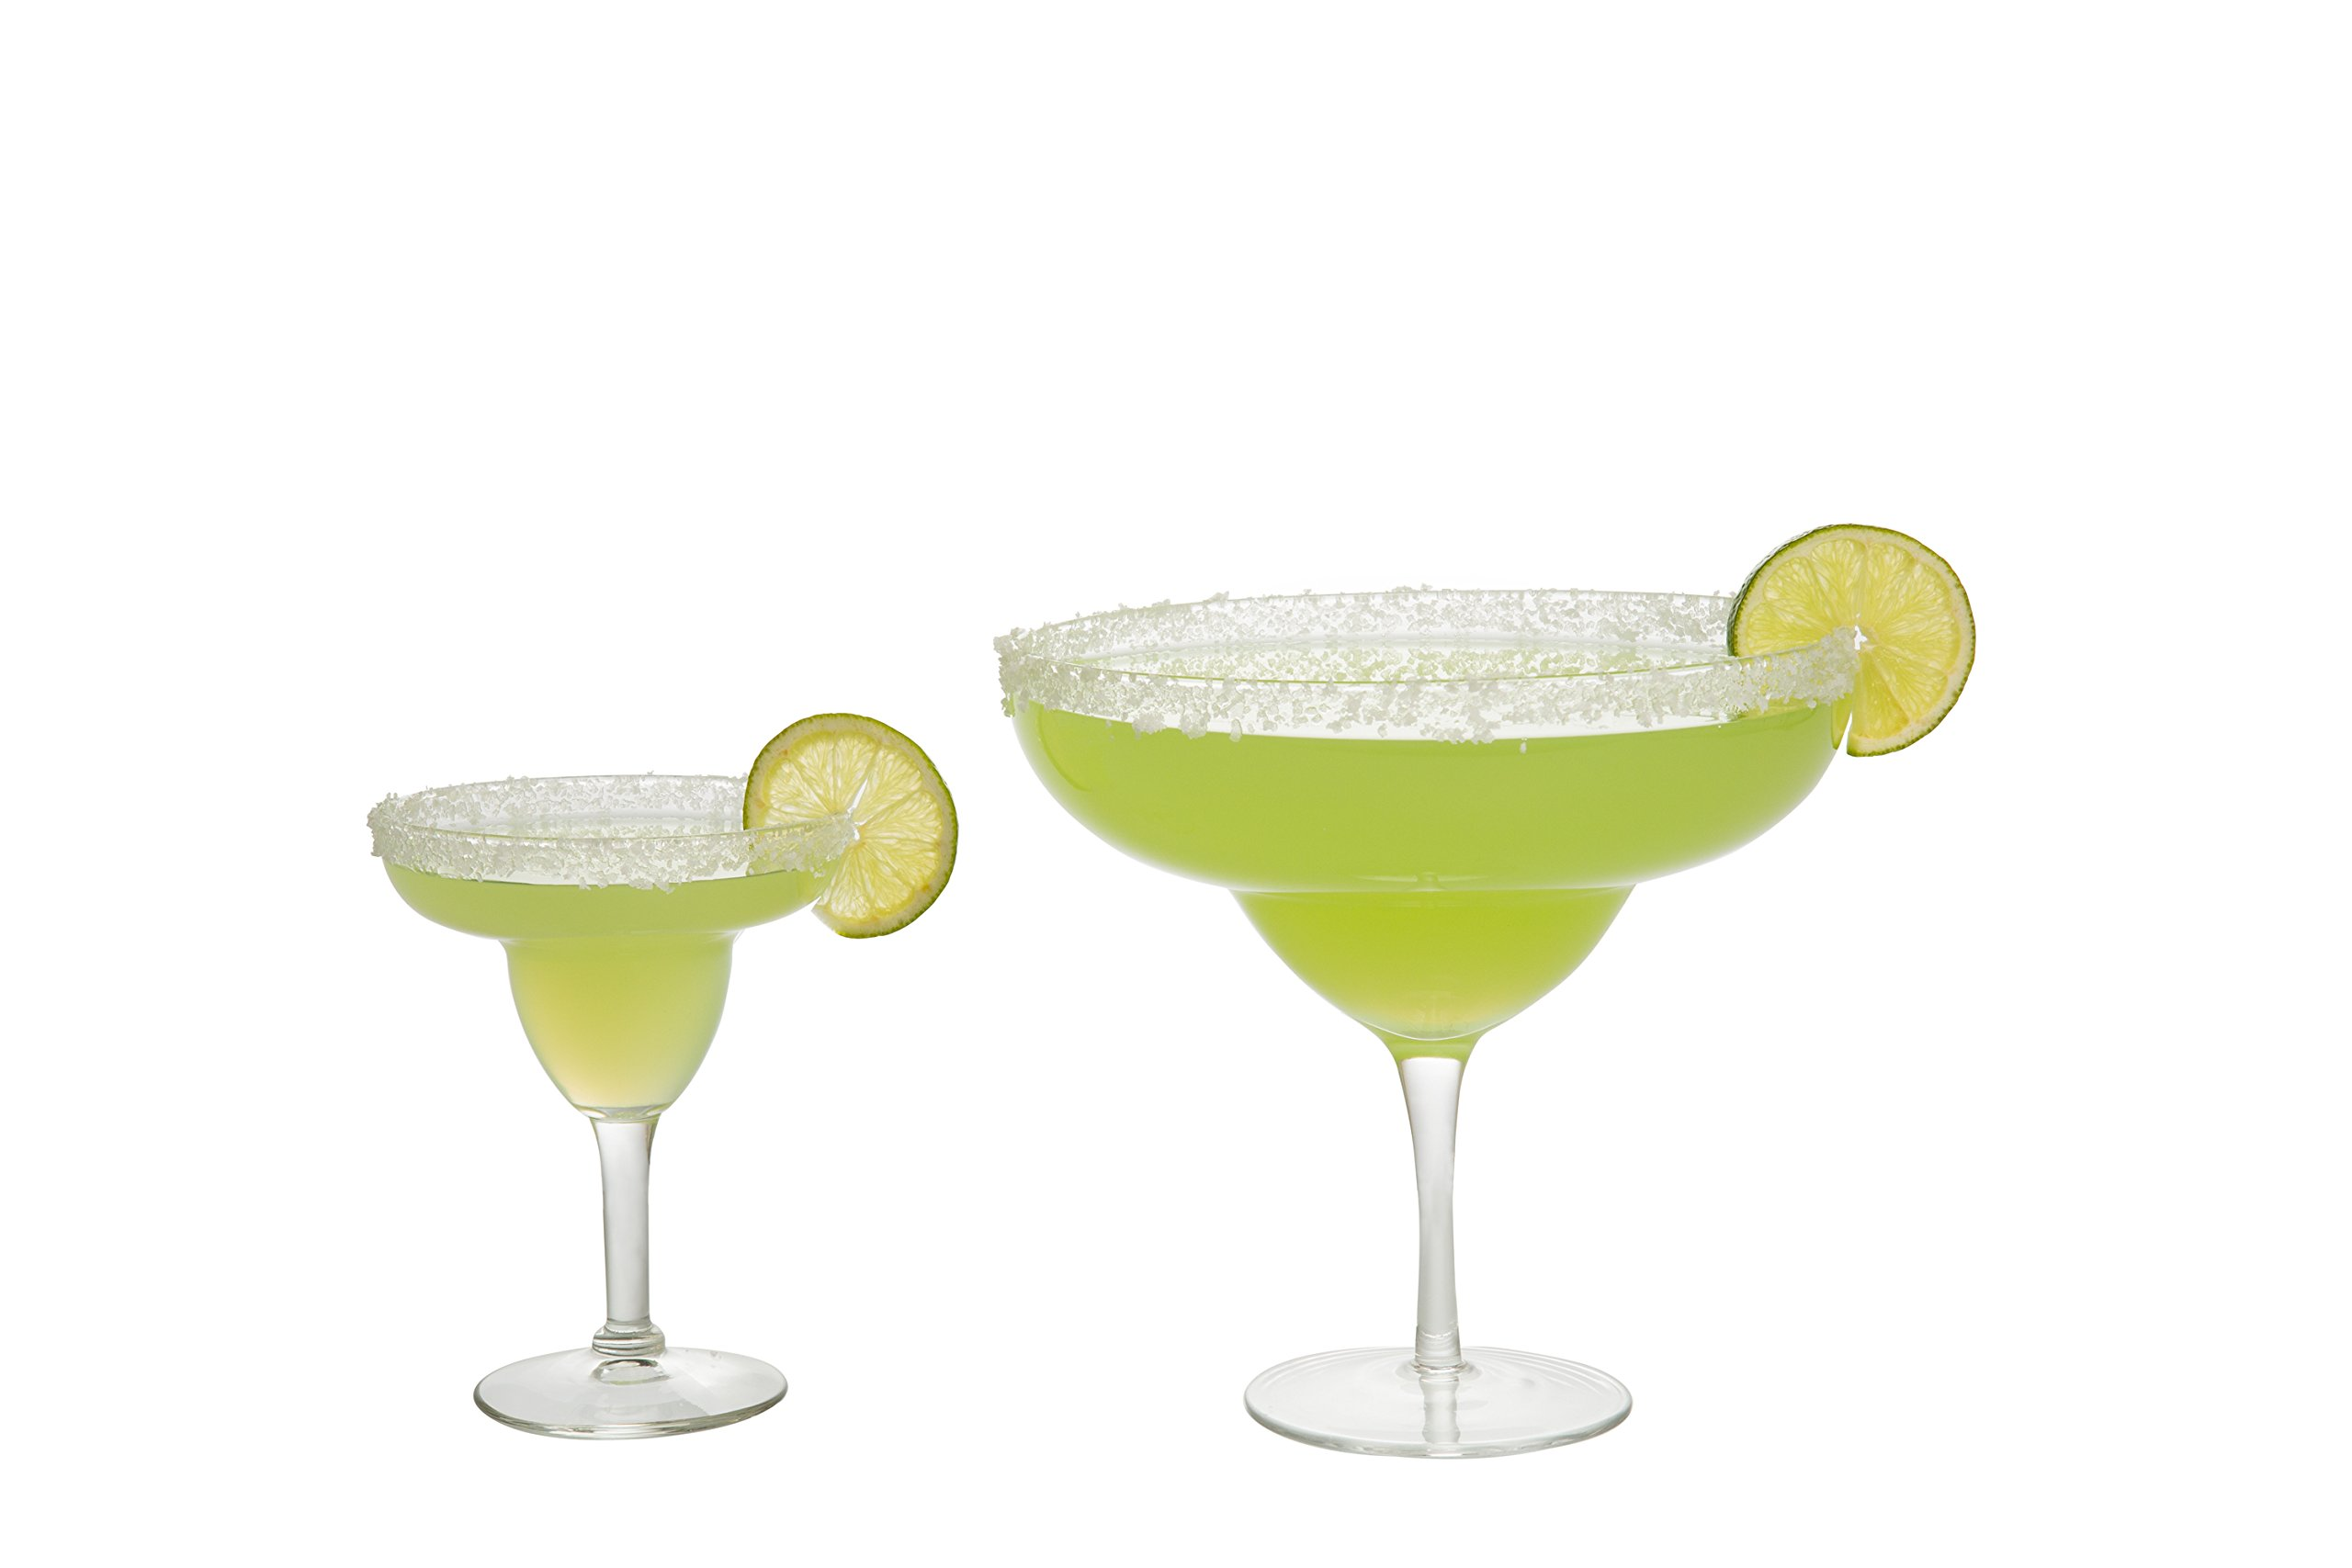 Extra Large Giant Cinco De Mayo Margarita Glass - 34oz - Fits about 3 typical margaritas! by Royal Lush (Image #3)